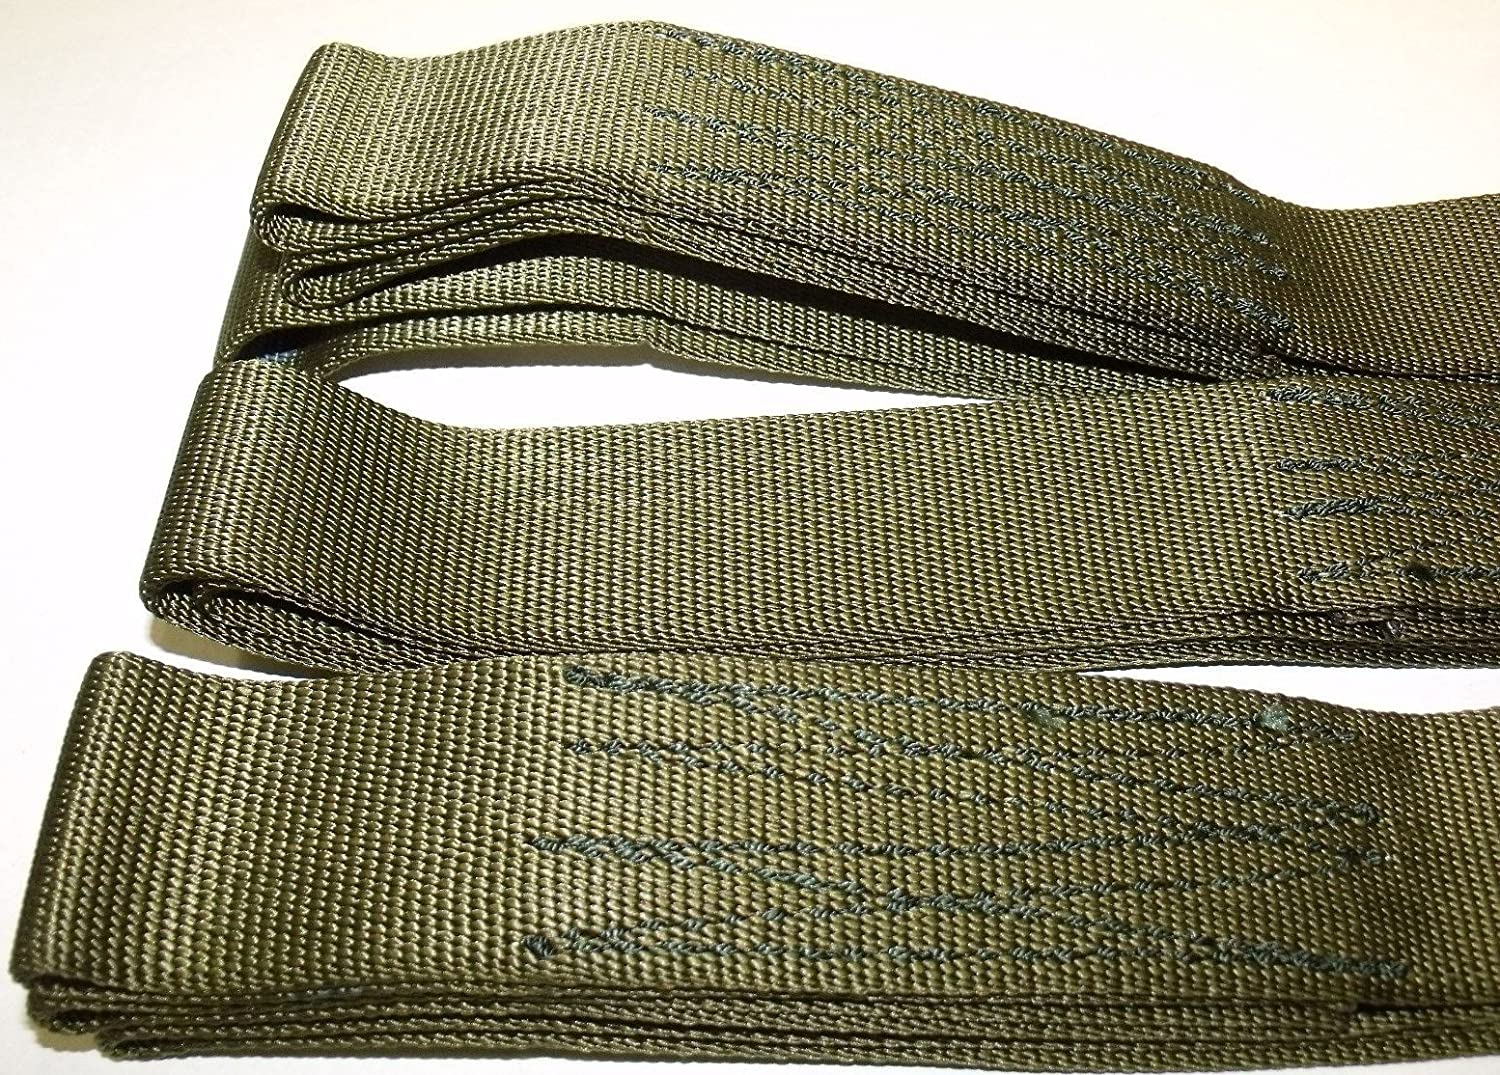 TyCa Industries ATV Tree Saver 2 Piece Set 5 Offroad Tow Cargo Recovery Straps Looped Ends Heavy Duty Sling 9000 lb Military Issue Nylon Webbing USA